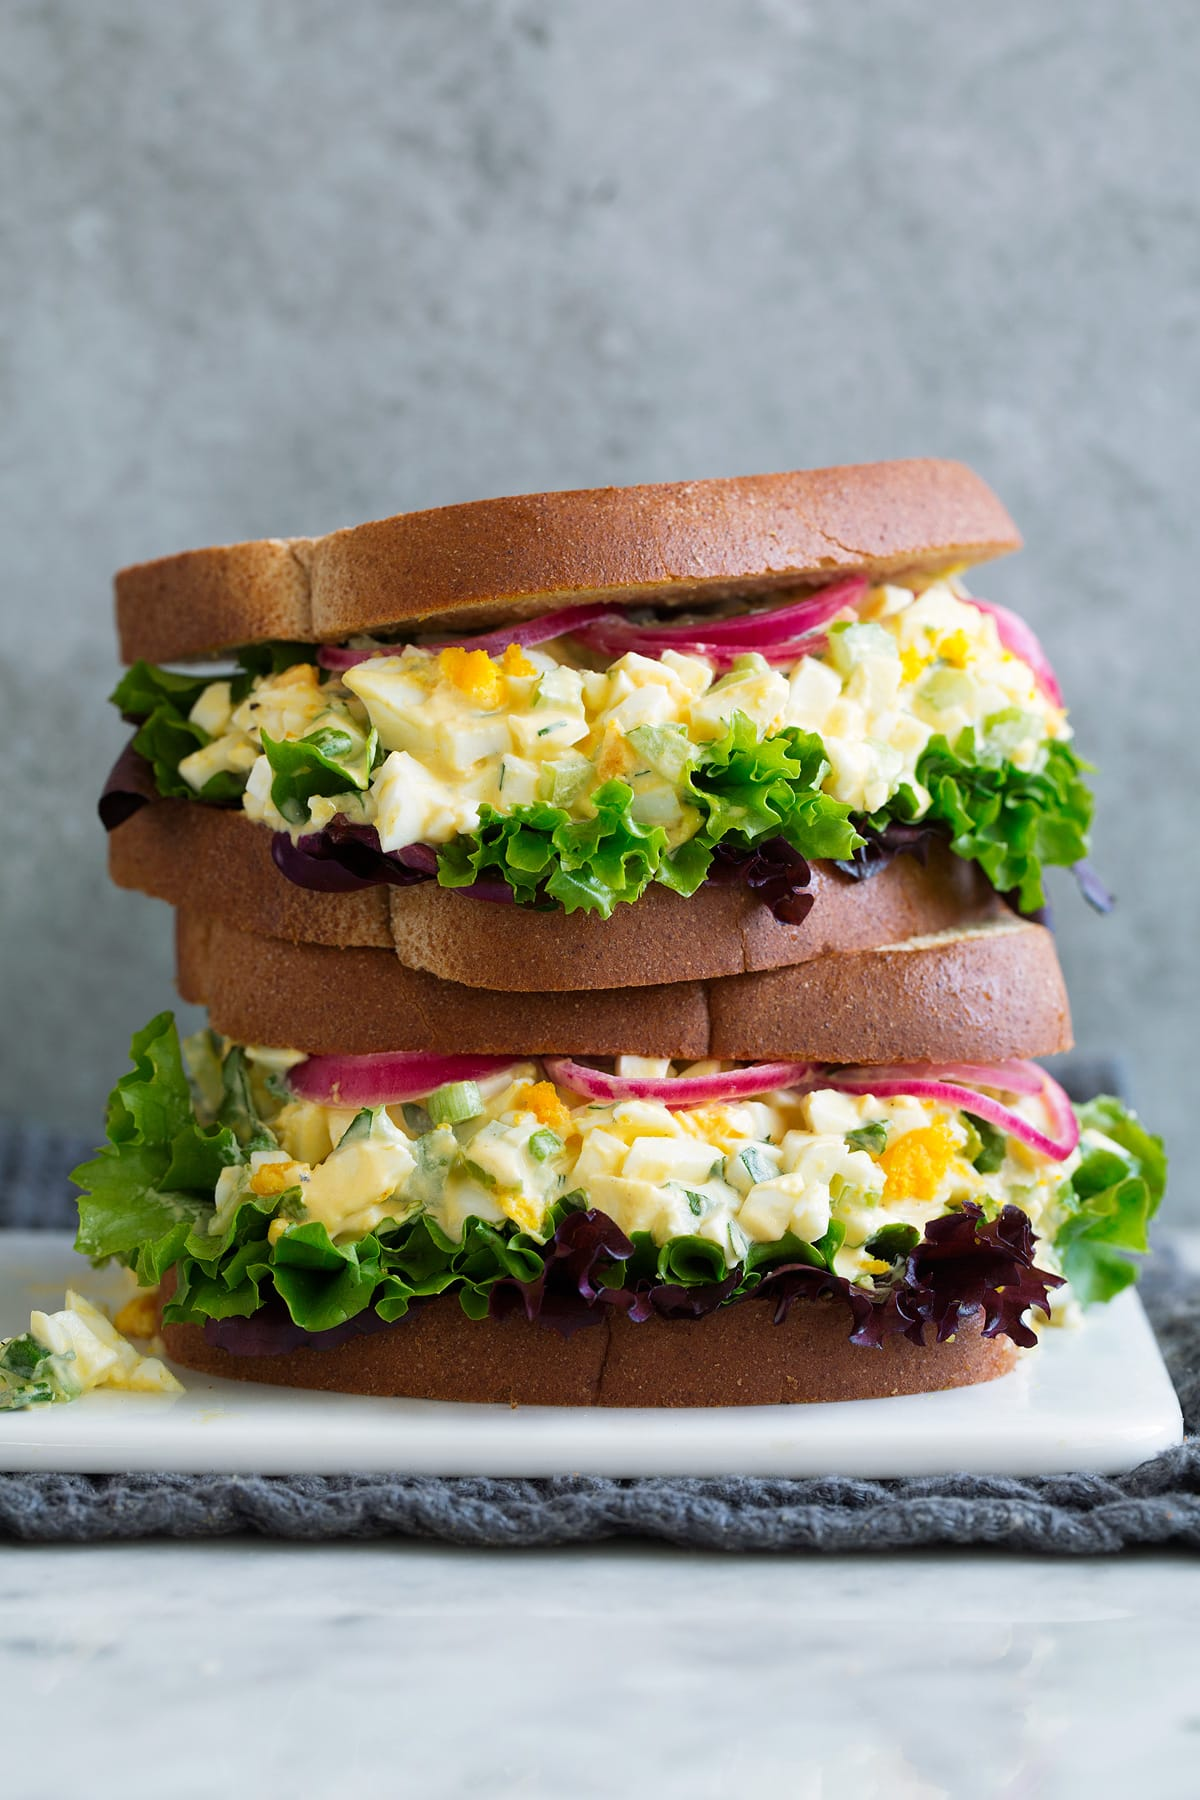 Stack of two Egg Salad Sandwiches on a white serving platter sitting on marble with a grey background.